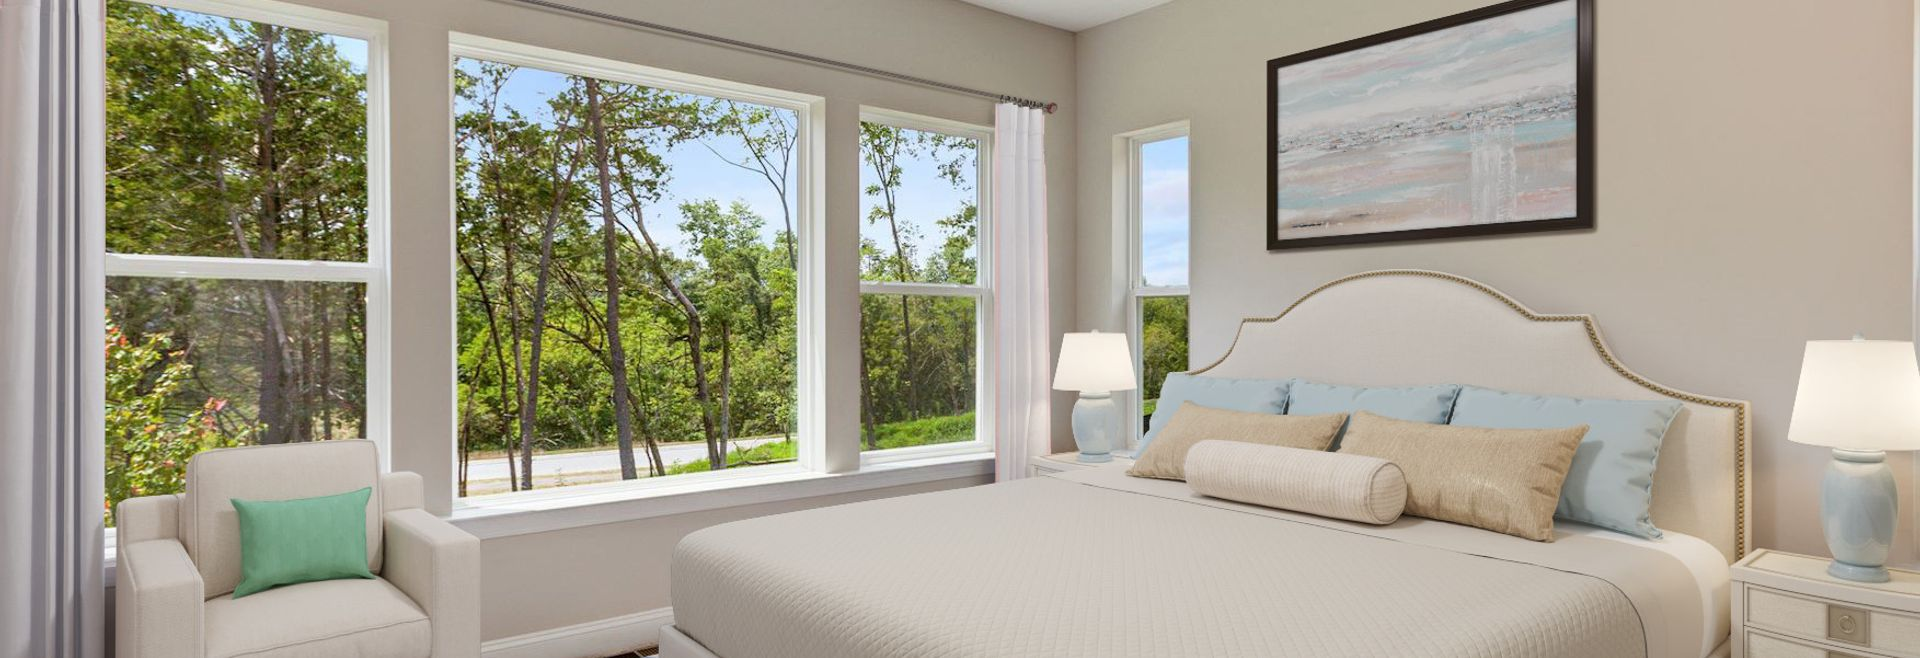 Trilogy at Lake Frederick Quick move In home Hensely Plan Virtually Staged Master Bed